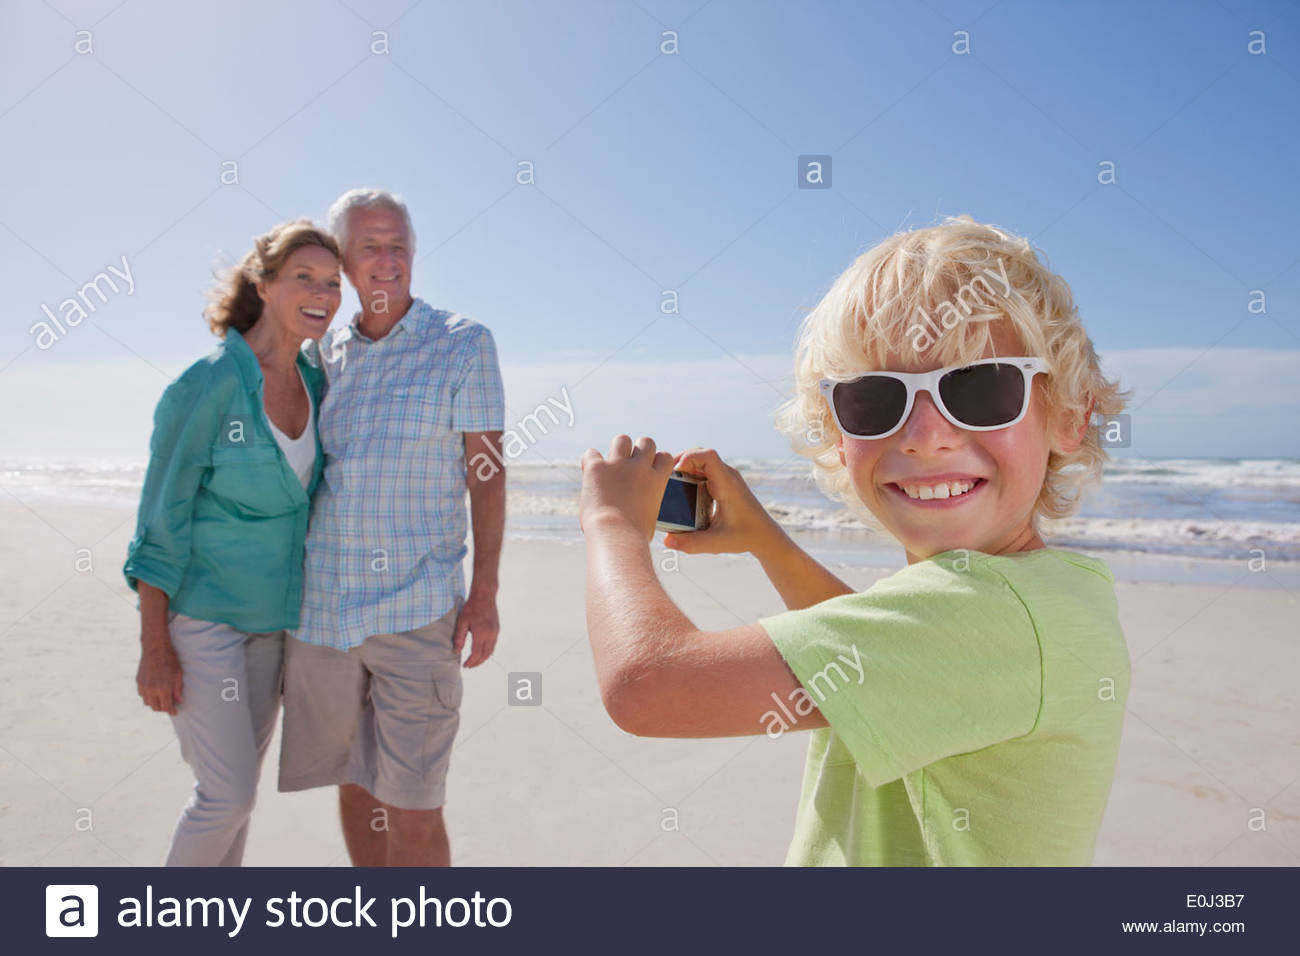 Portrait of smiling petit-fils avec appareil photo numérique en photographiant les grands-parents sur sunny beach Photo Stock